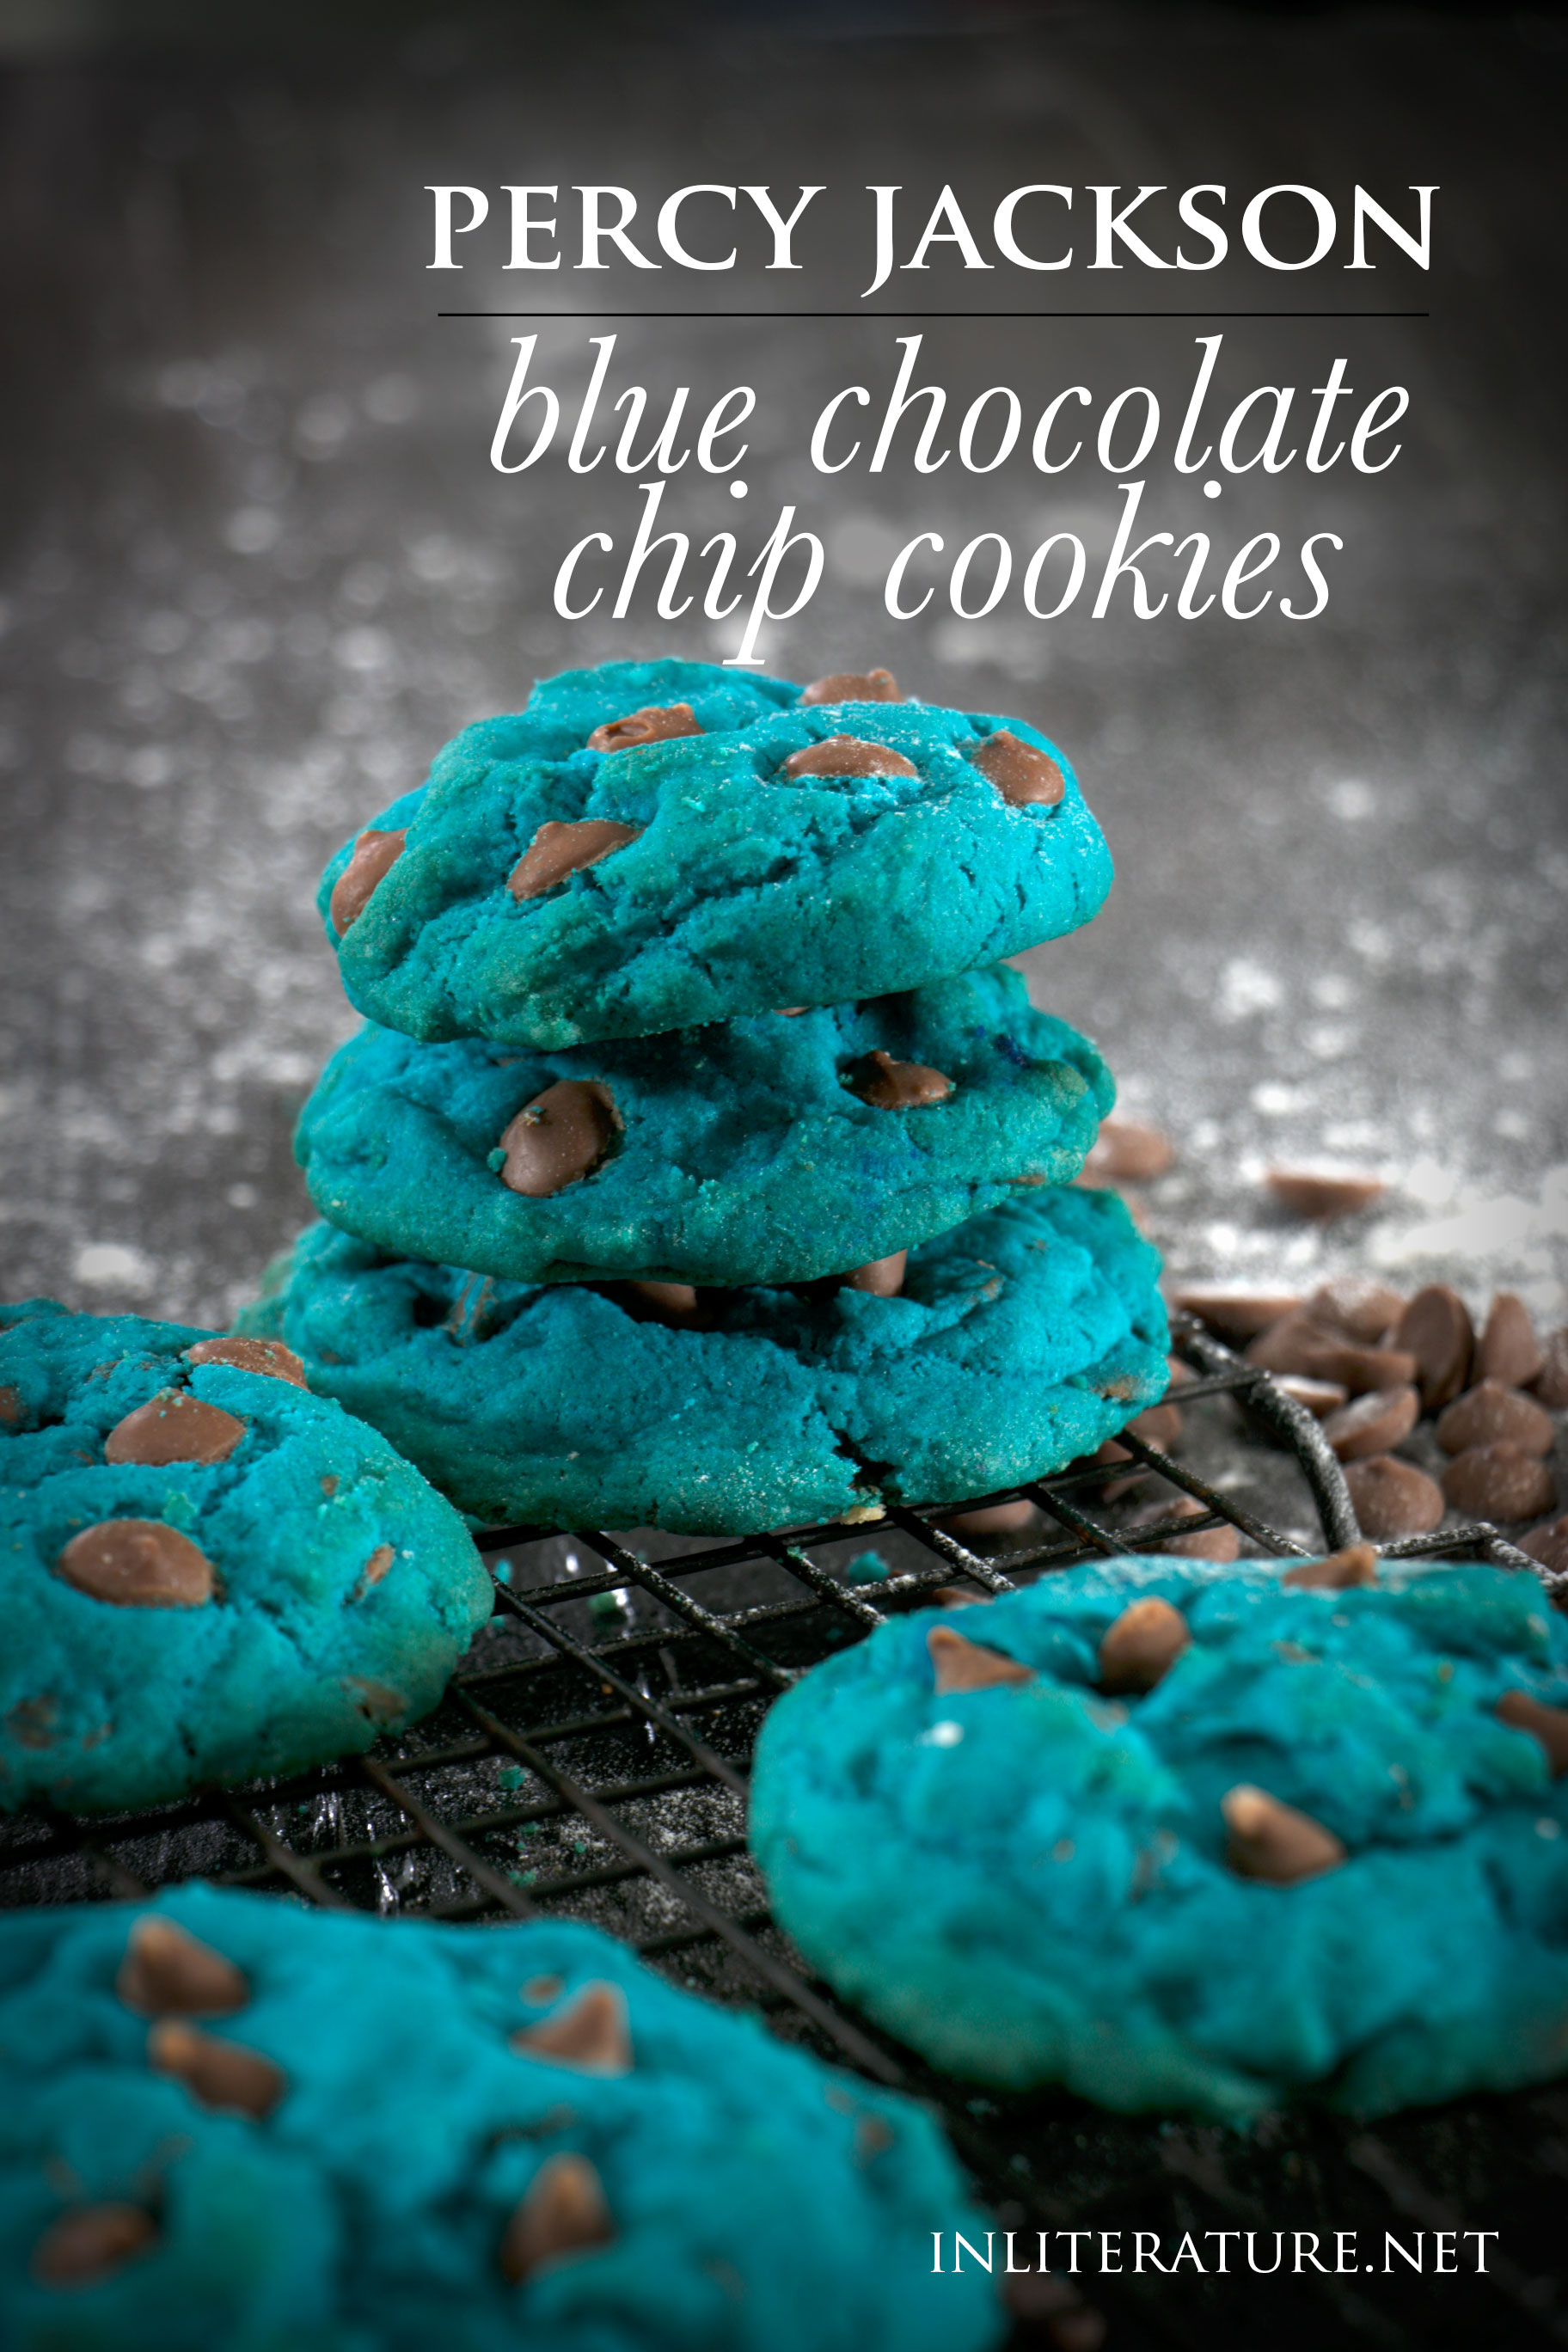 Blue chocolate chip cookies | Percy Jackson